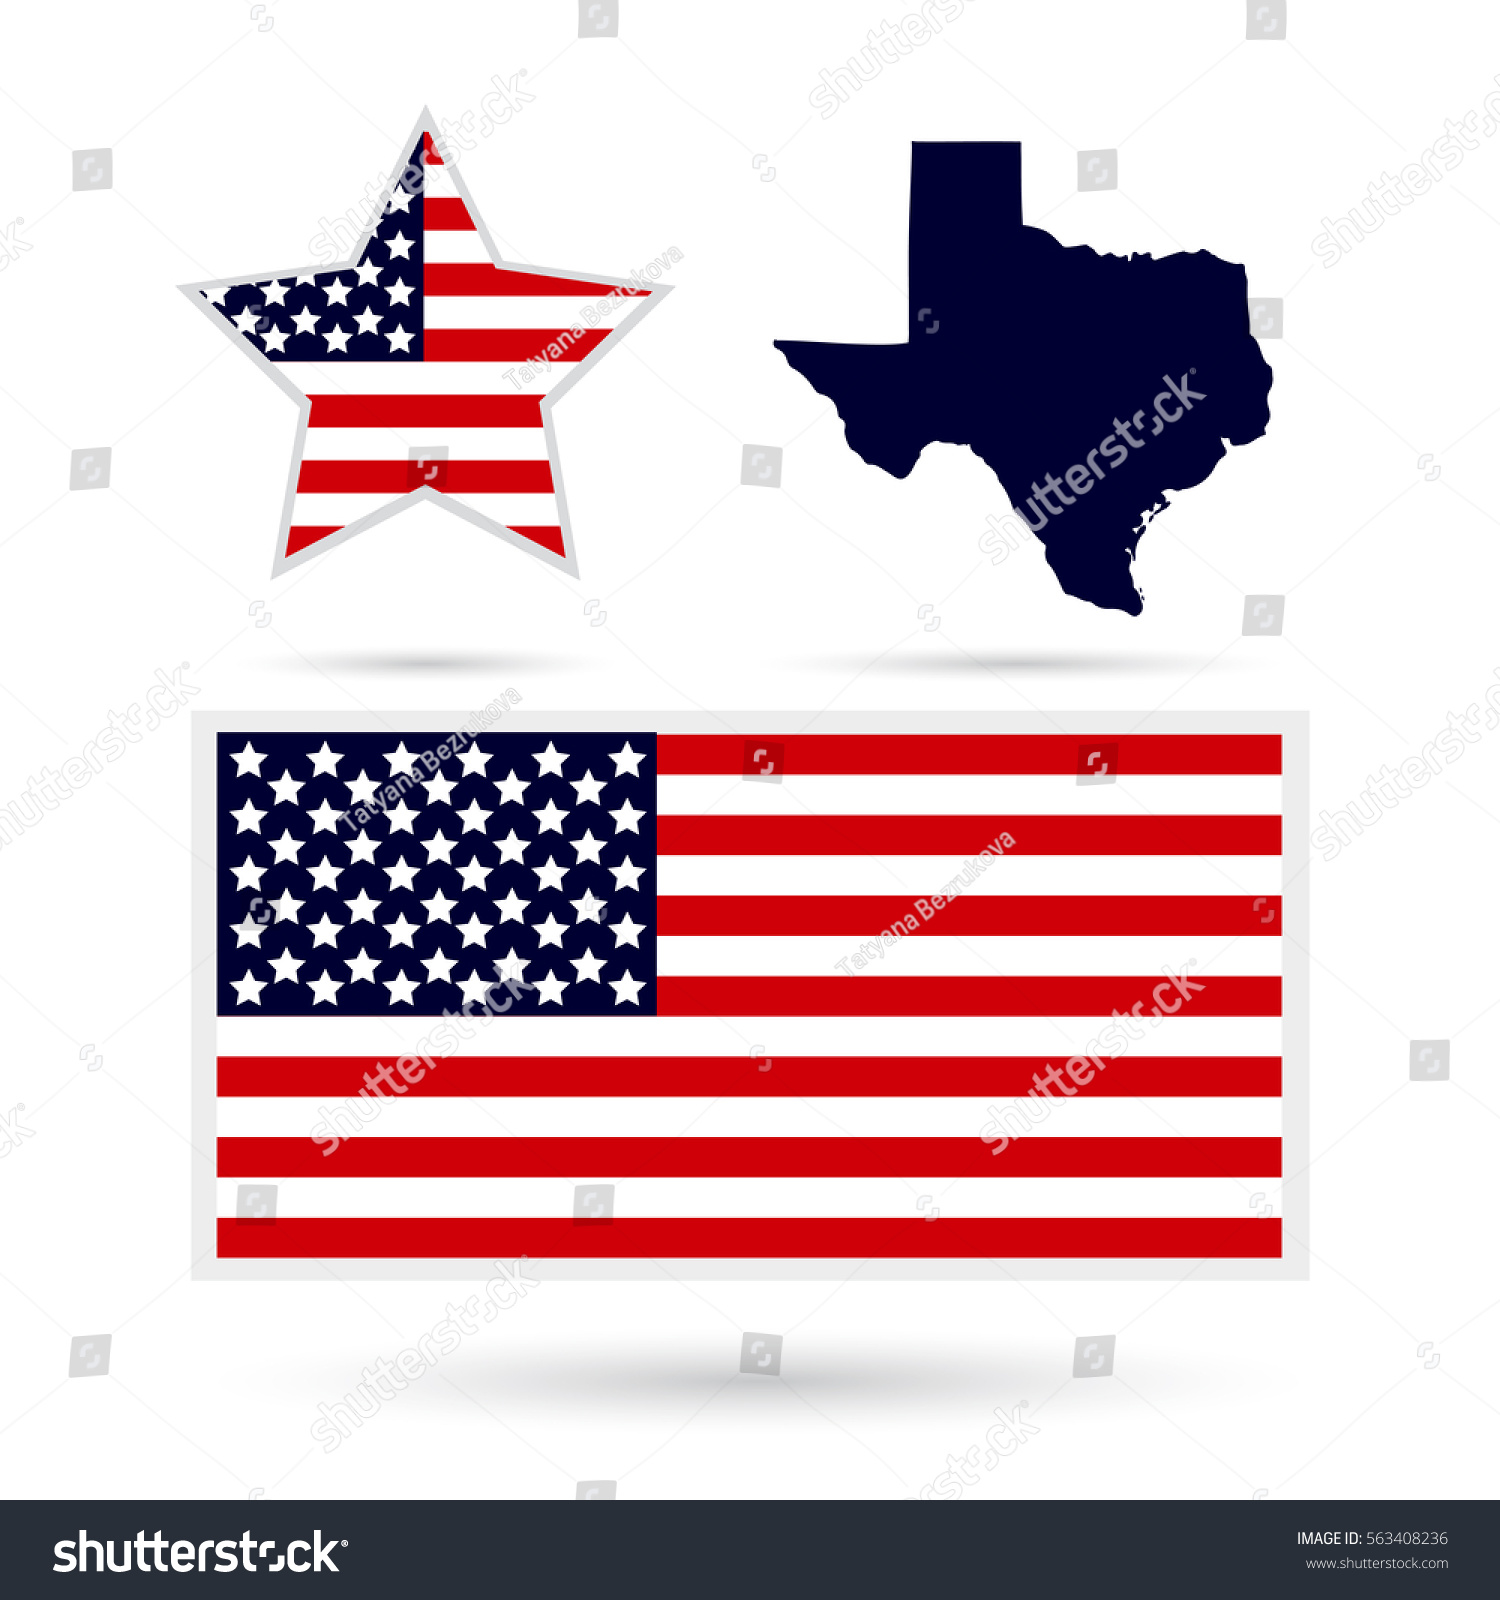 Map Of Texas US State Texas Map Utah Outline Maps And Map Links - The us state map pixs